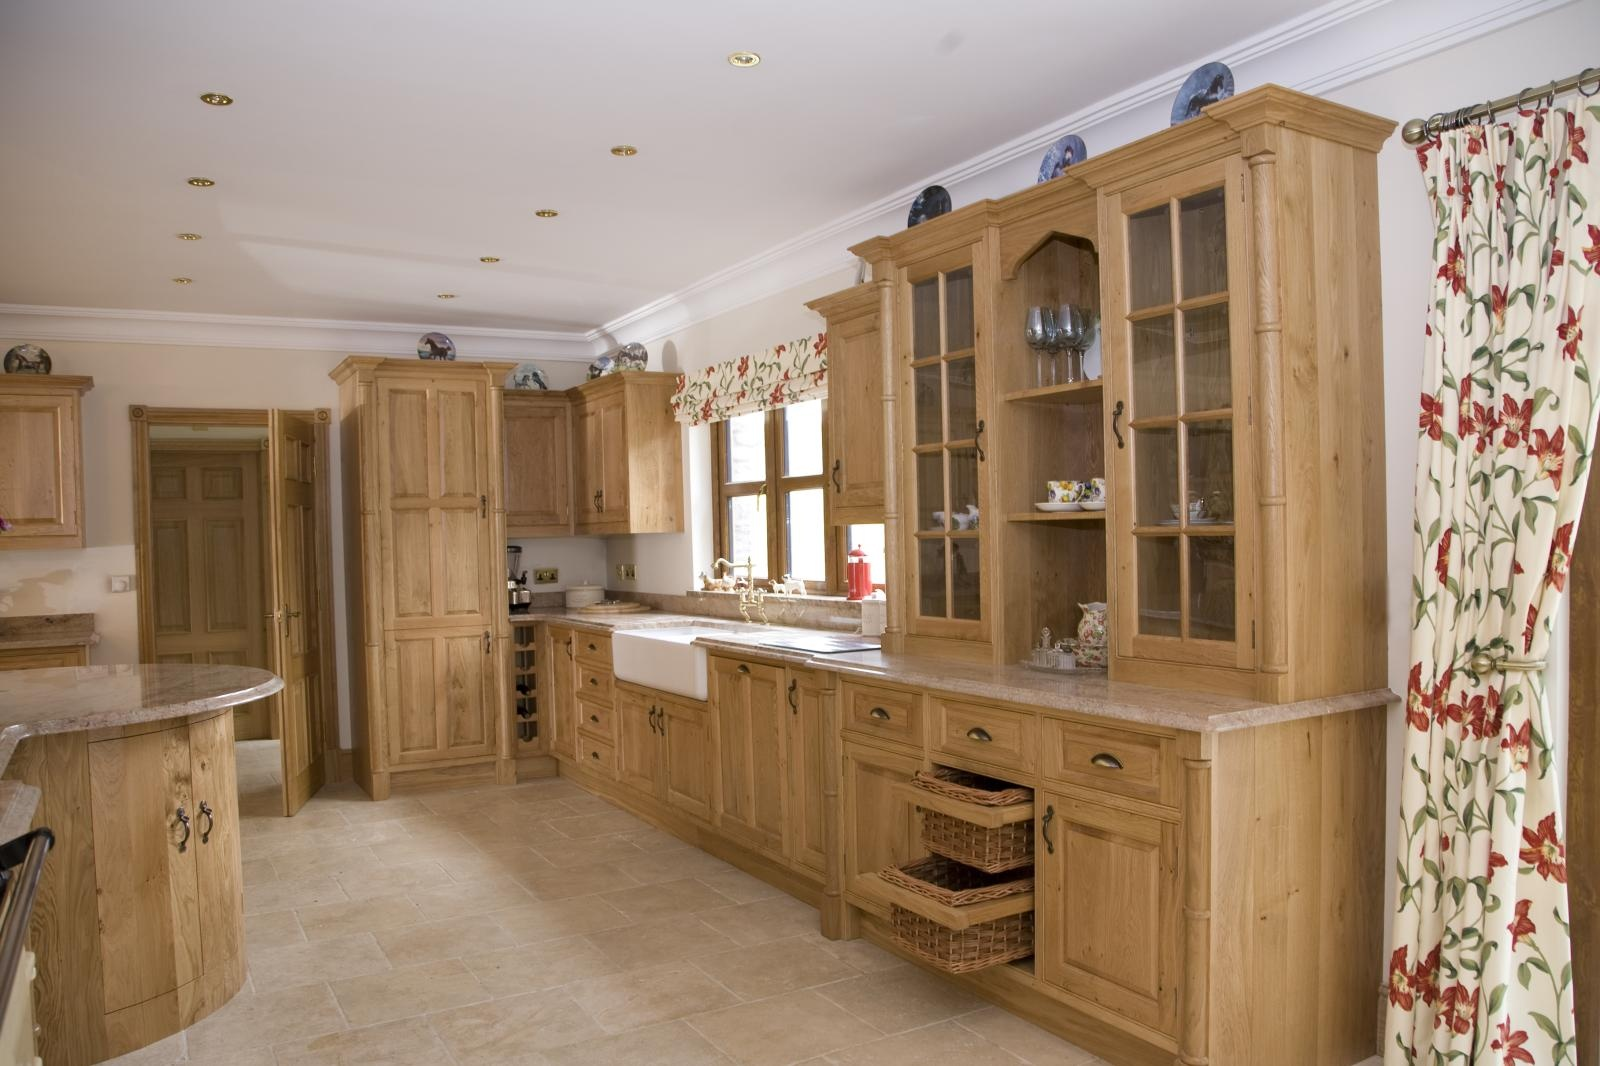 Oak kitchen bristol mark stone 39 s welsh kitchens for Oak kitchen ideas designs